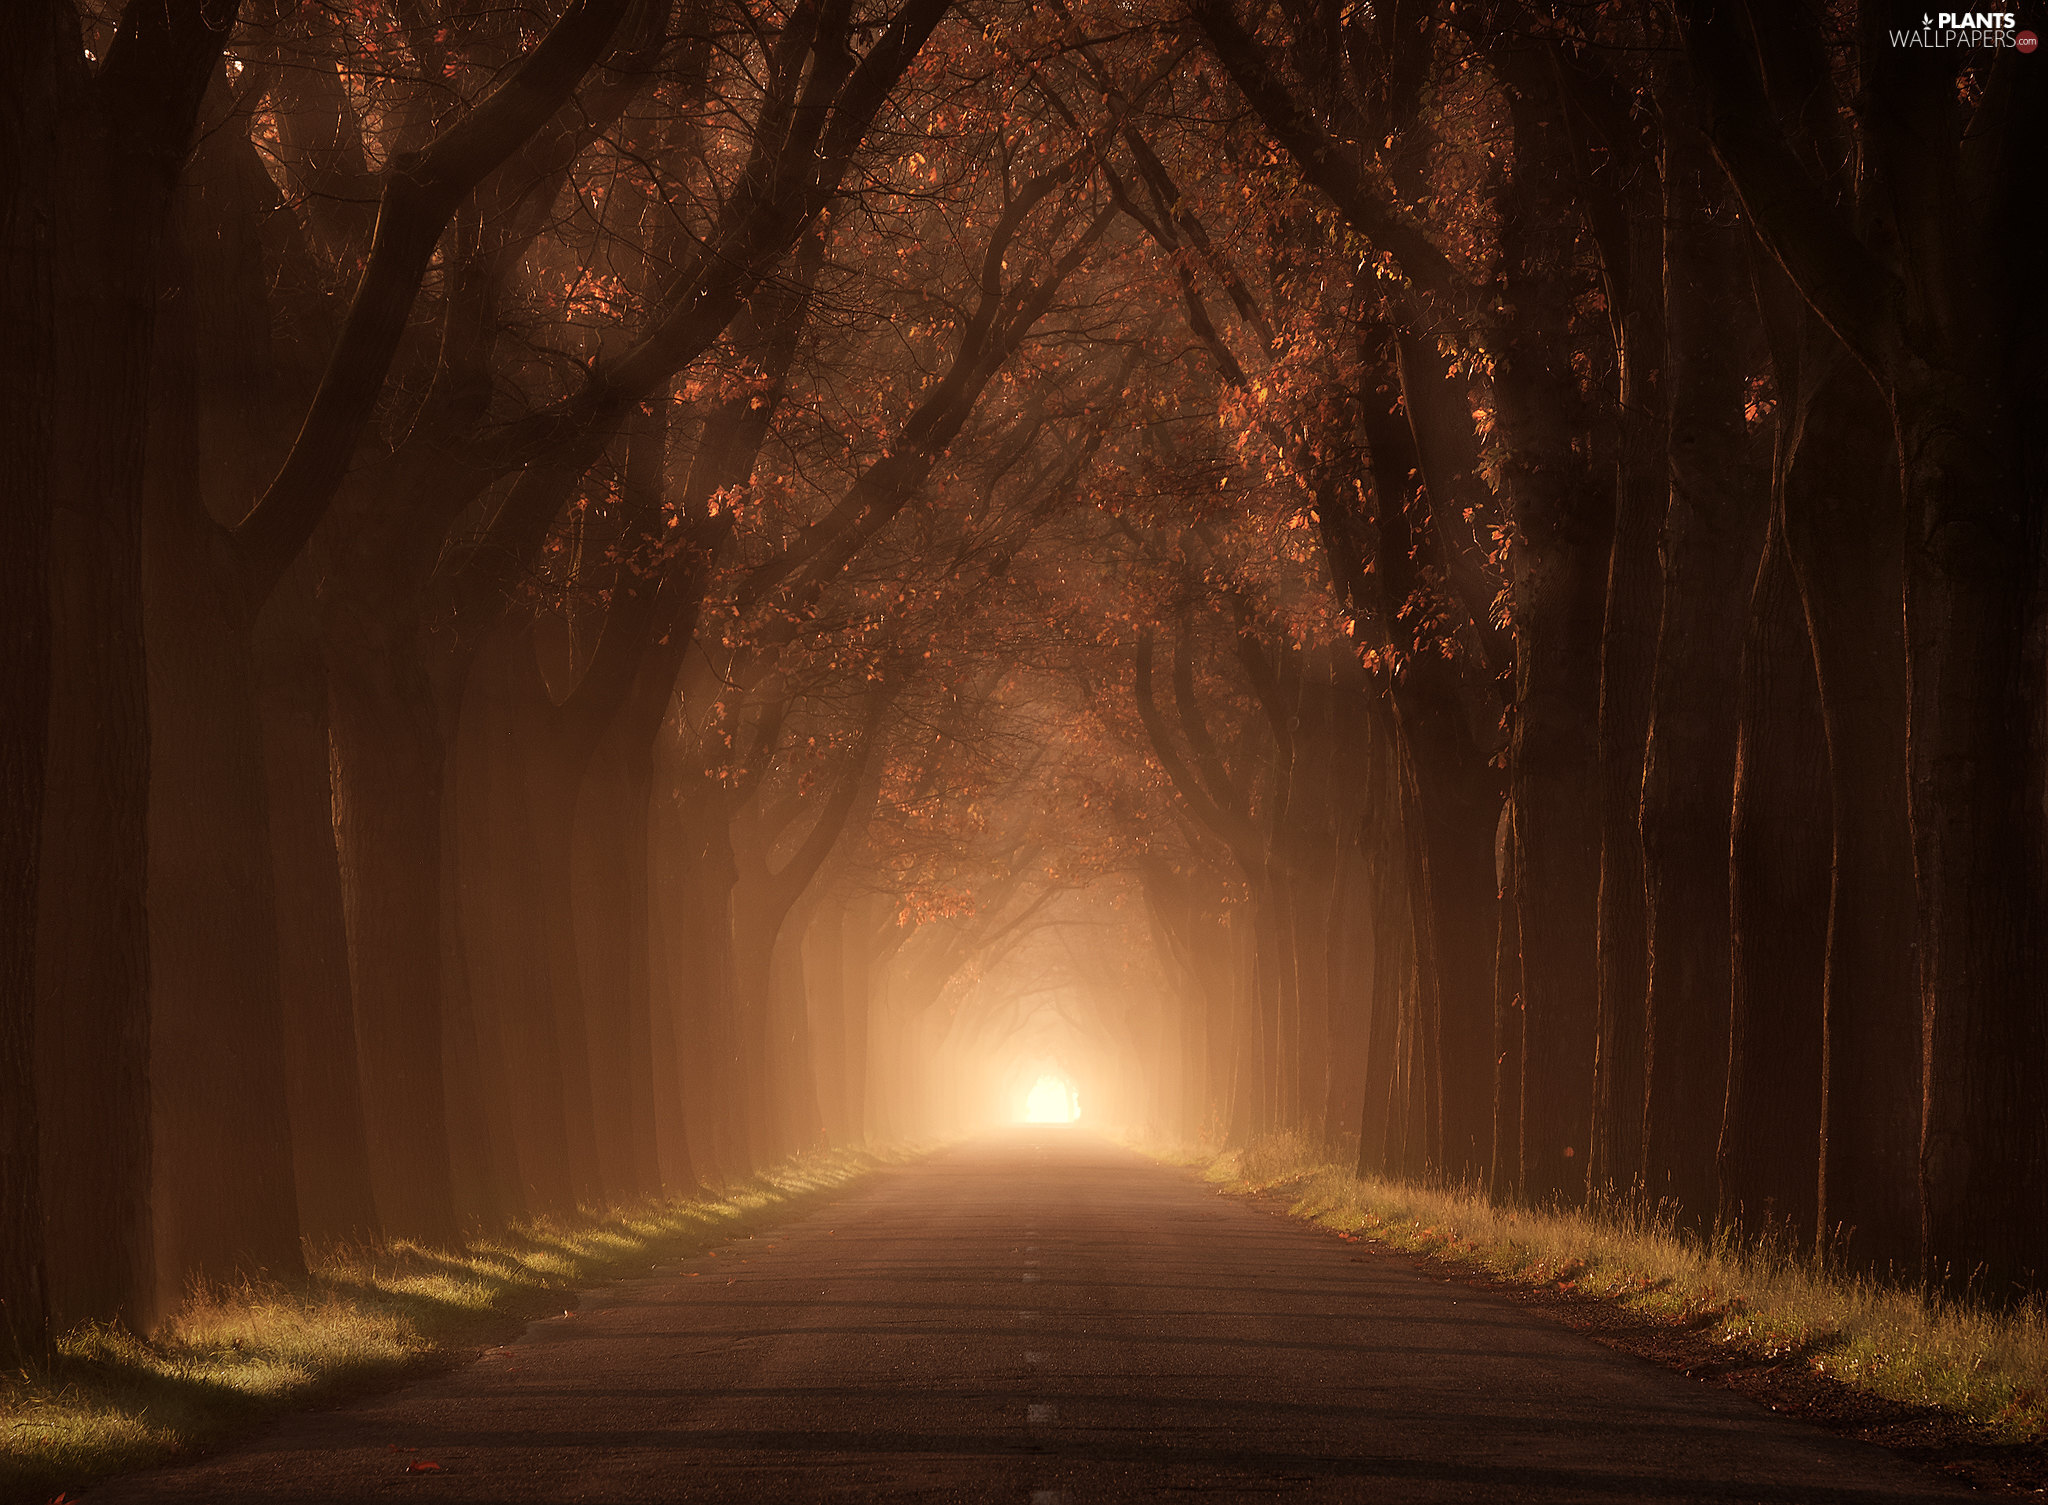 Fog, autumn, trees, Way, forest, illuminated, viewes